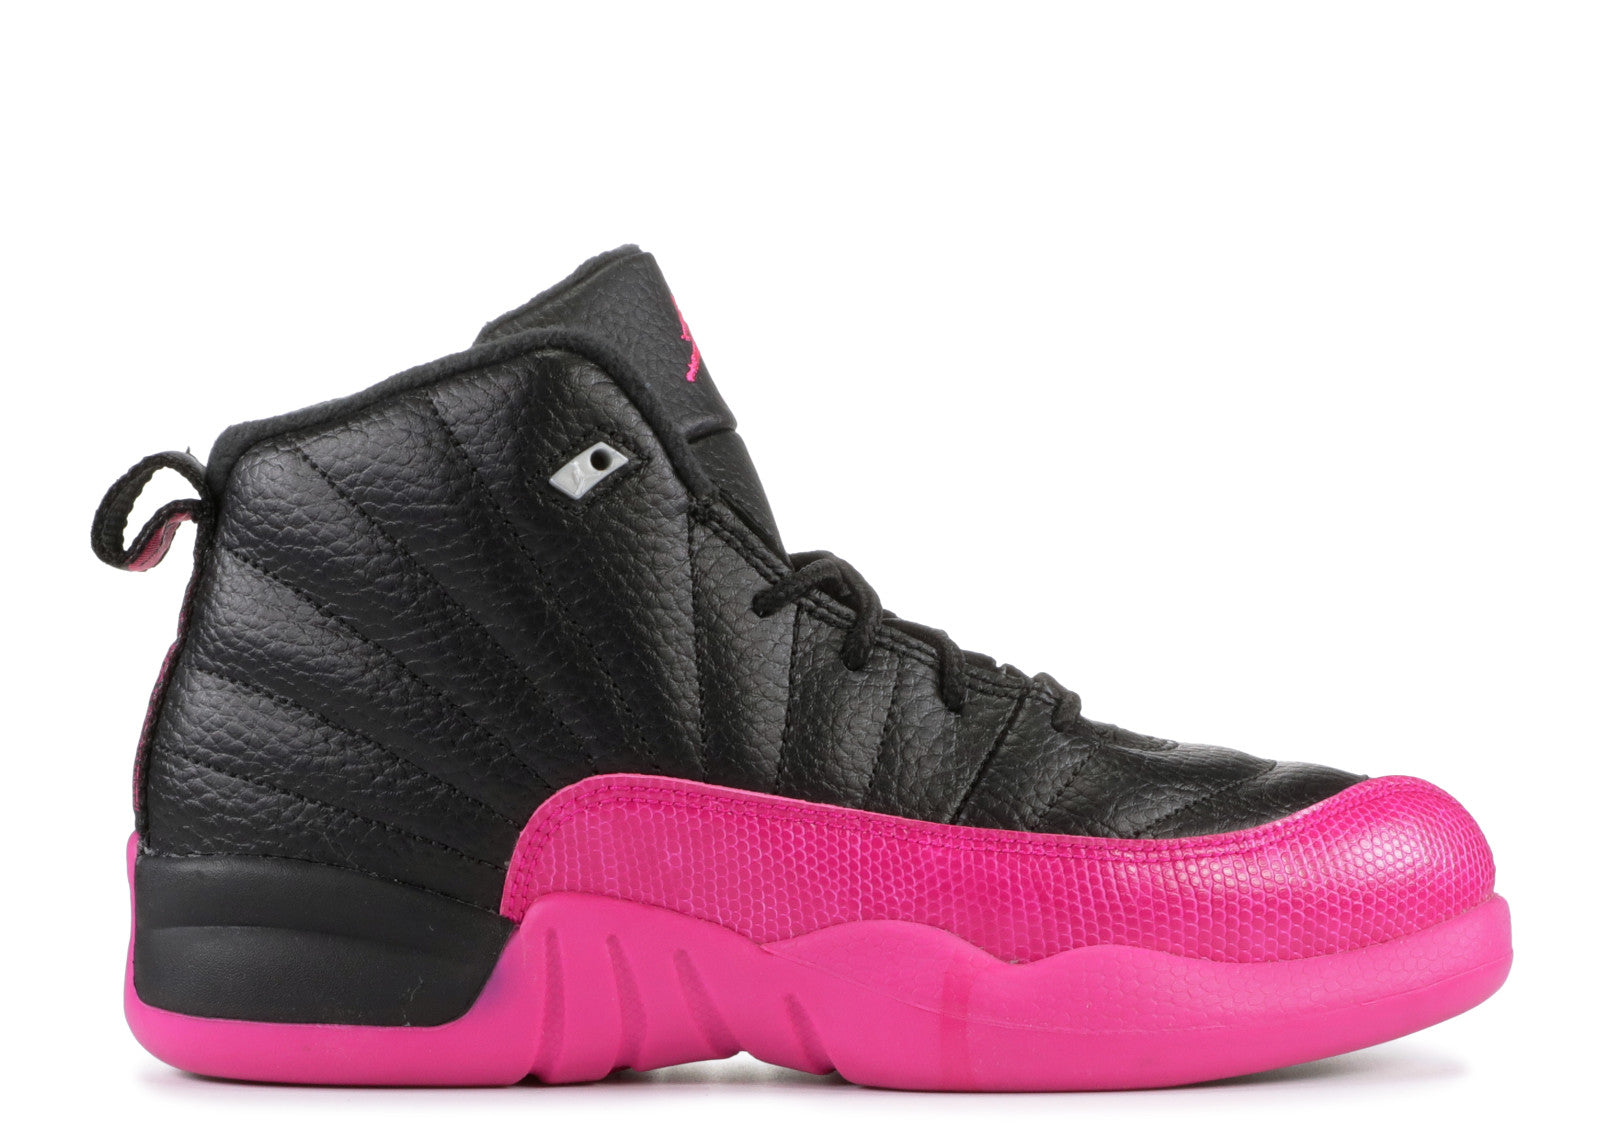 uk availability 21e3b 60830 Jordan 12 Retro Girls Preschool 'Pink'